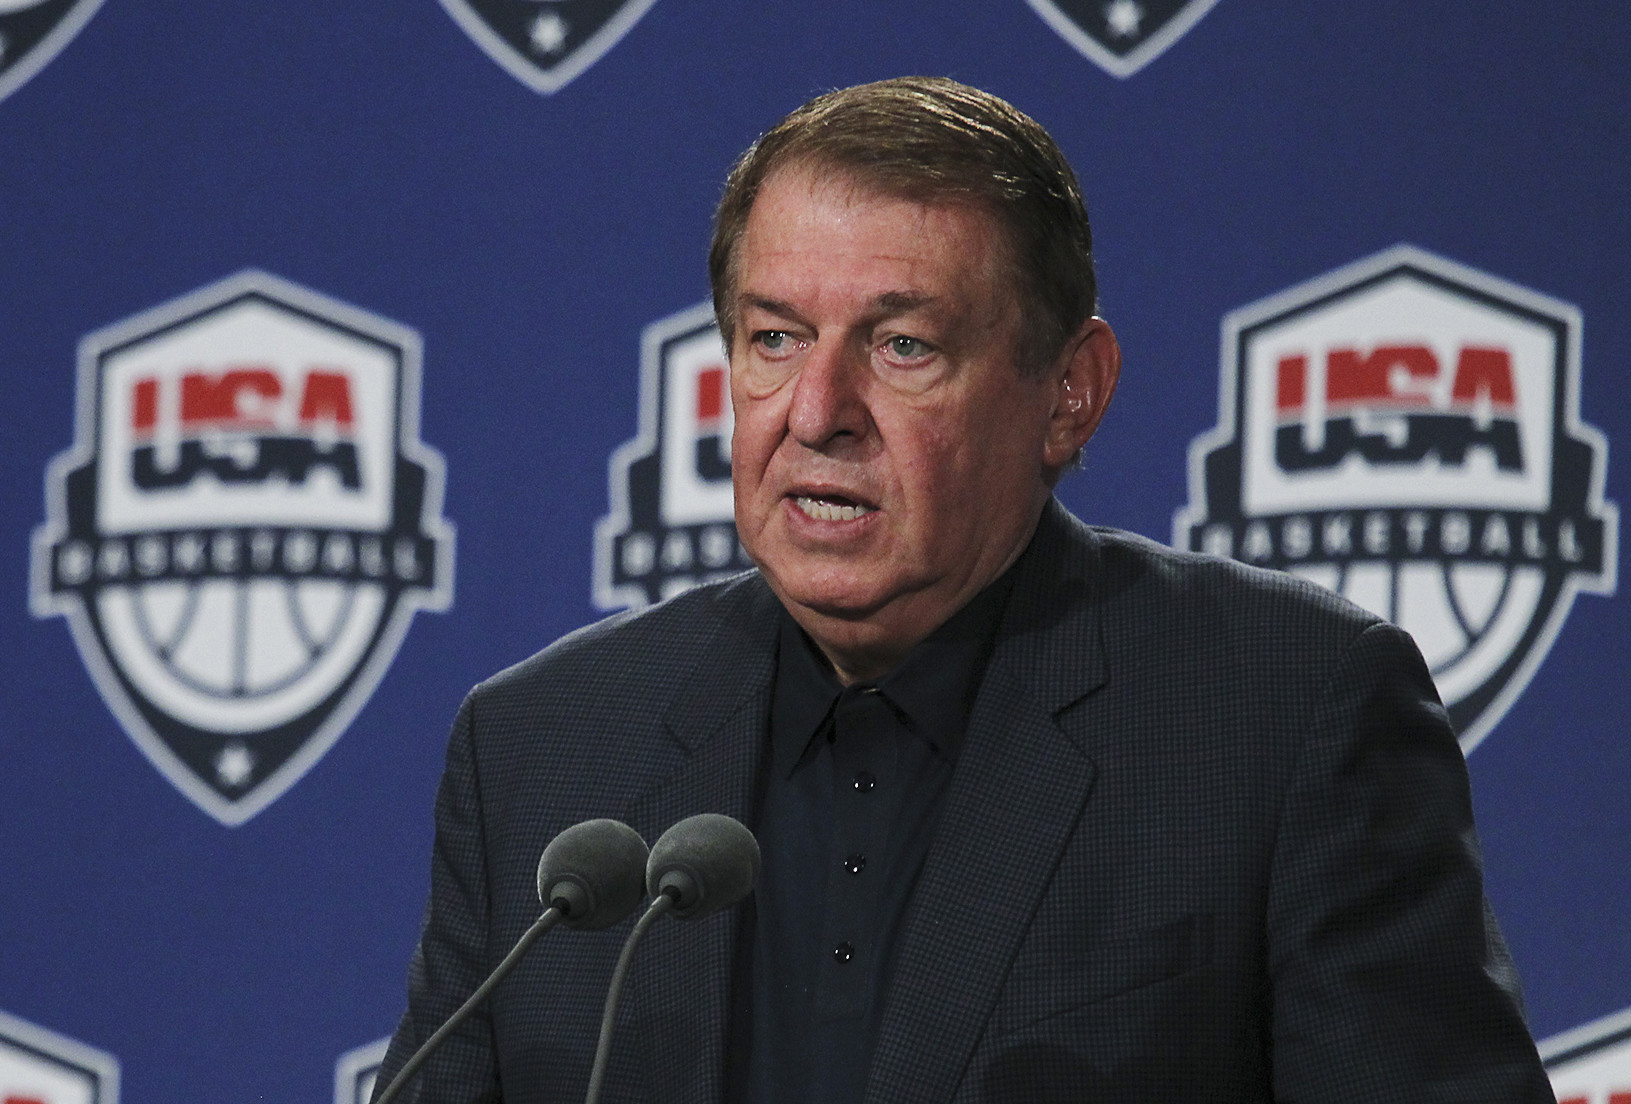 Jerry Colangelo says hiring agents like Leon Rose to run teams is 'flavor of the month'